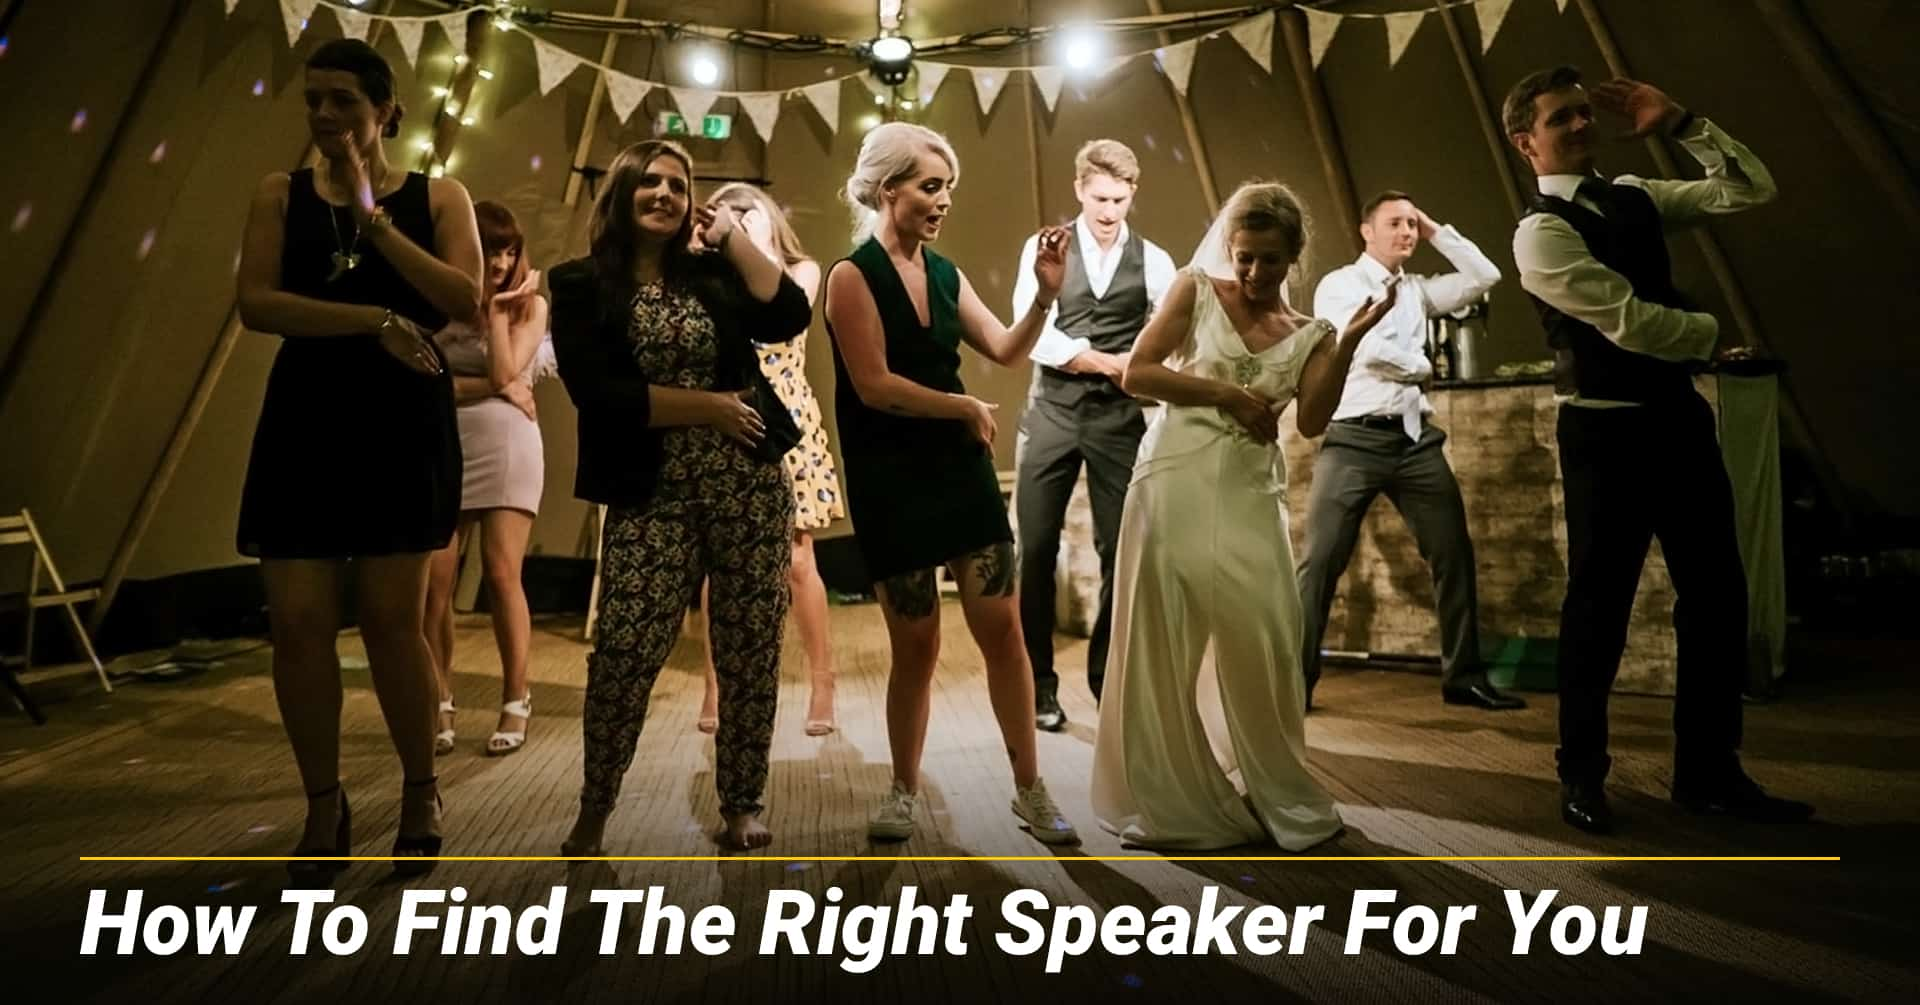 How To Find The Right Speaker For You